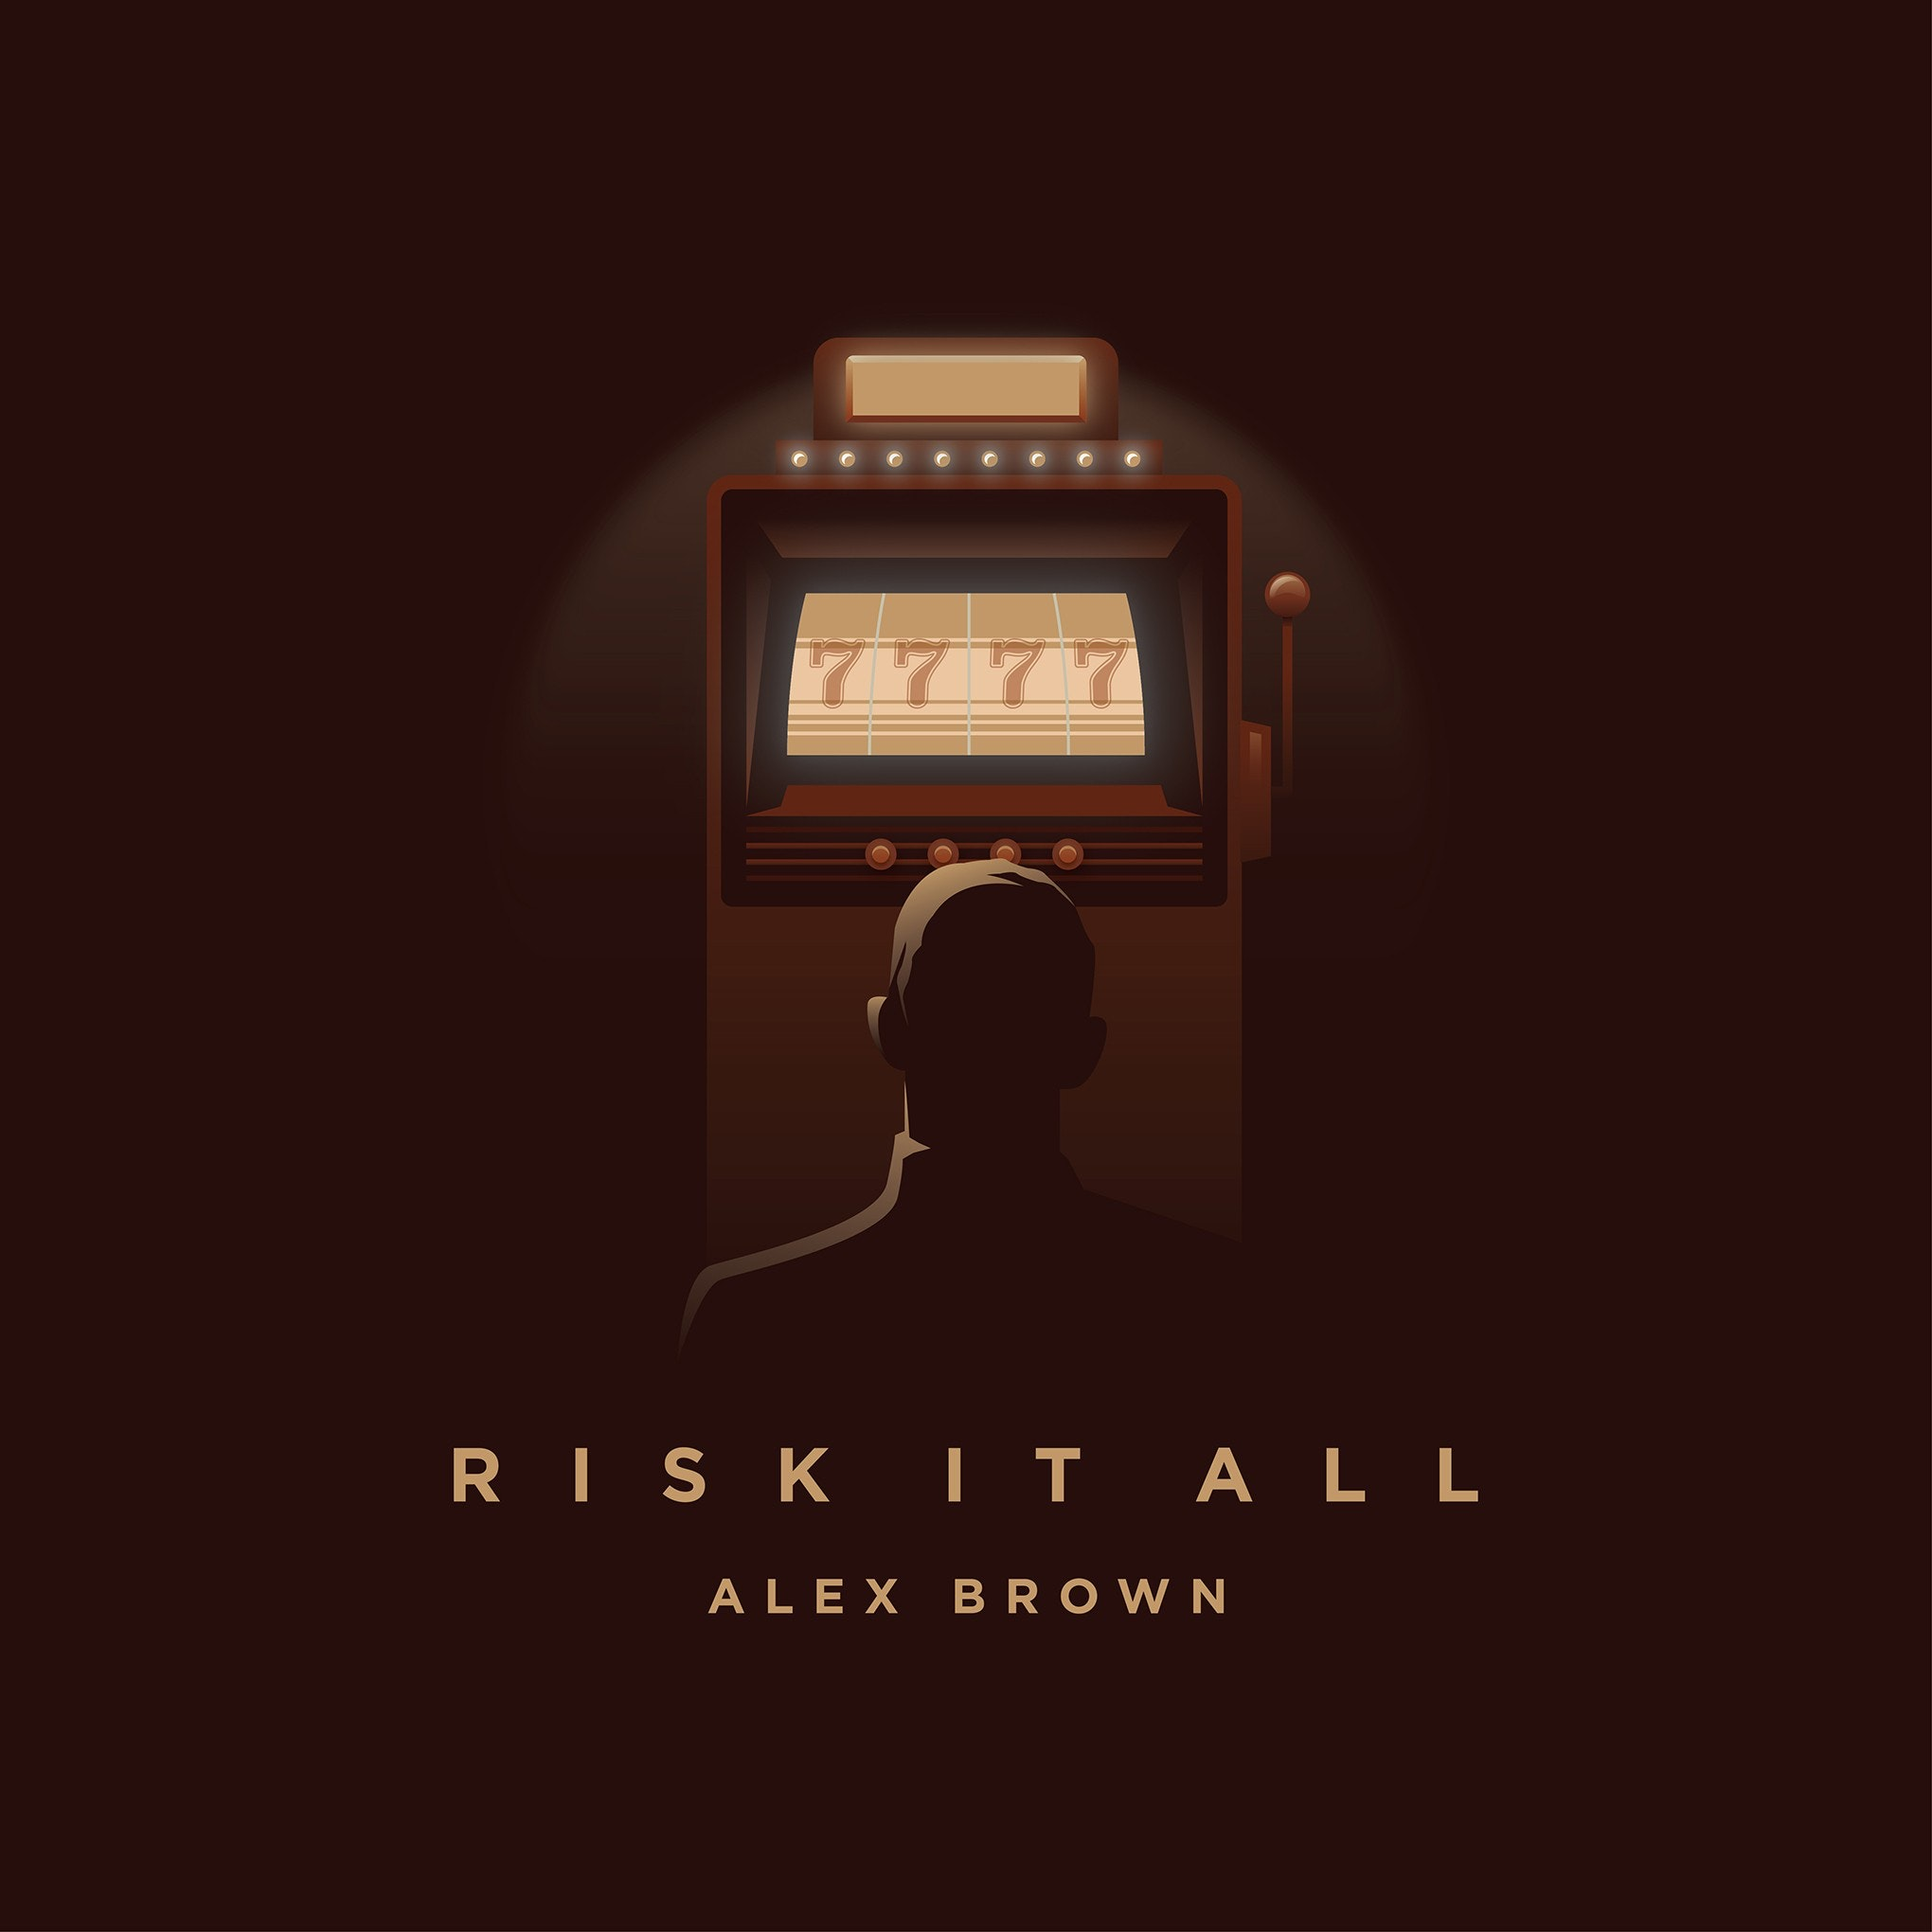 Risk It All album cover